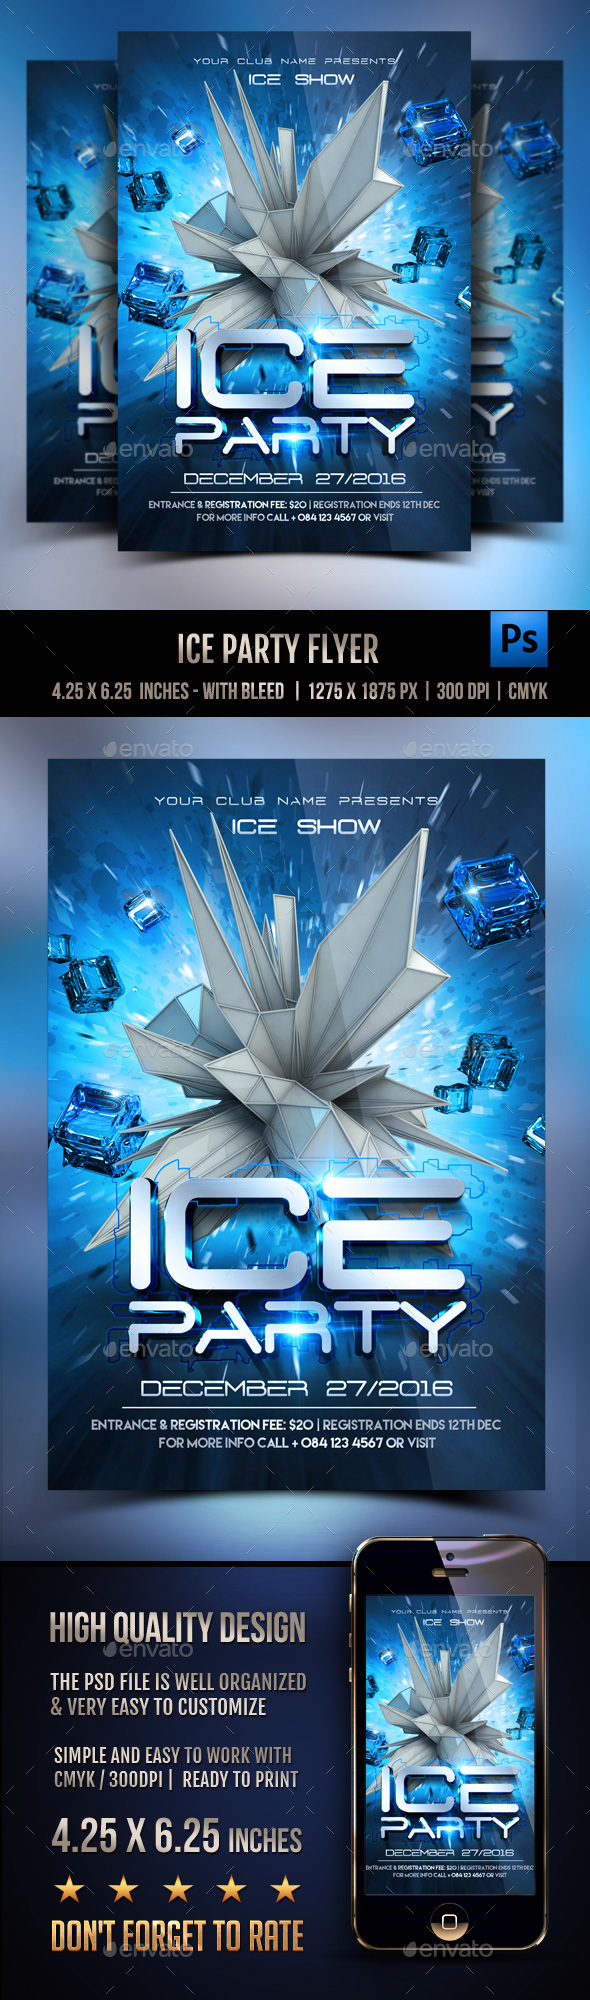 Ice Party Flyer - Clubs & Parties Events